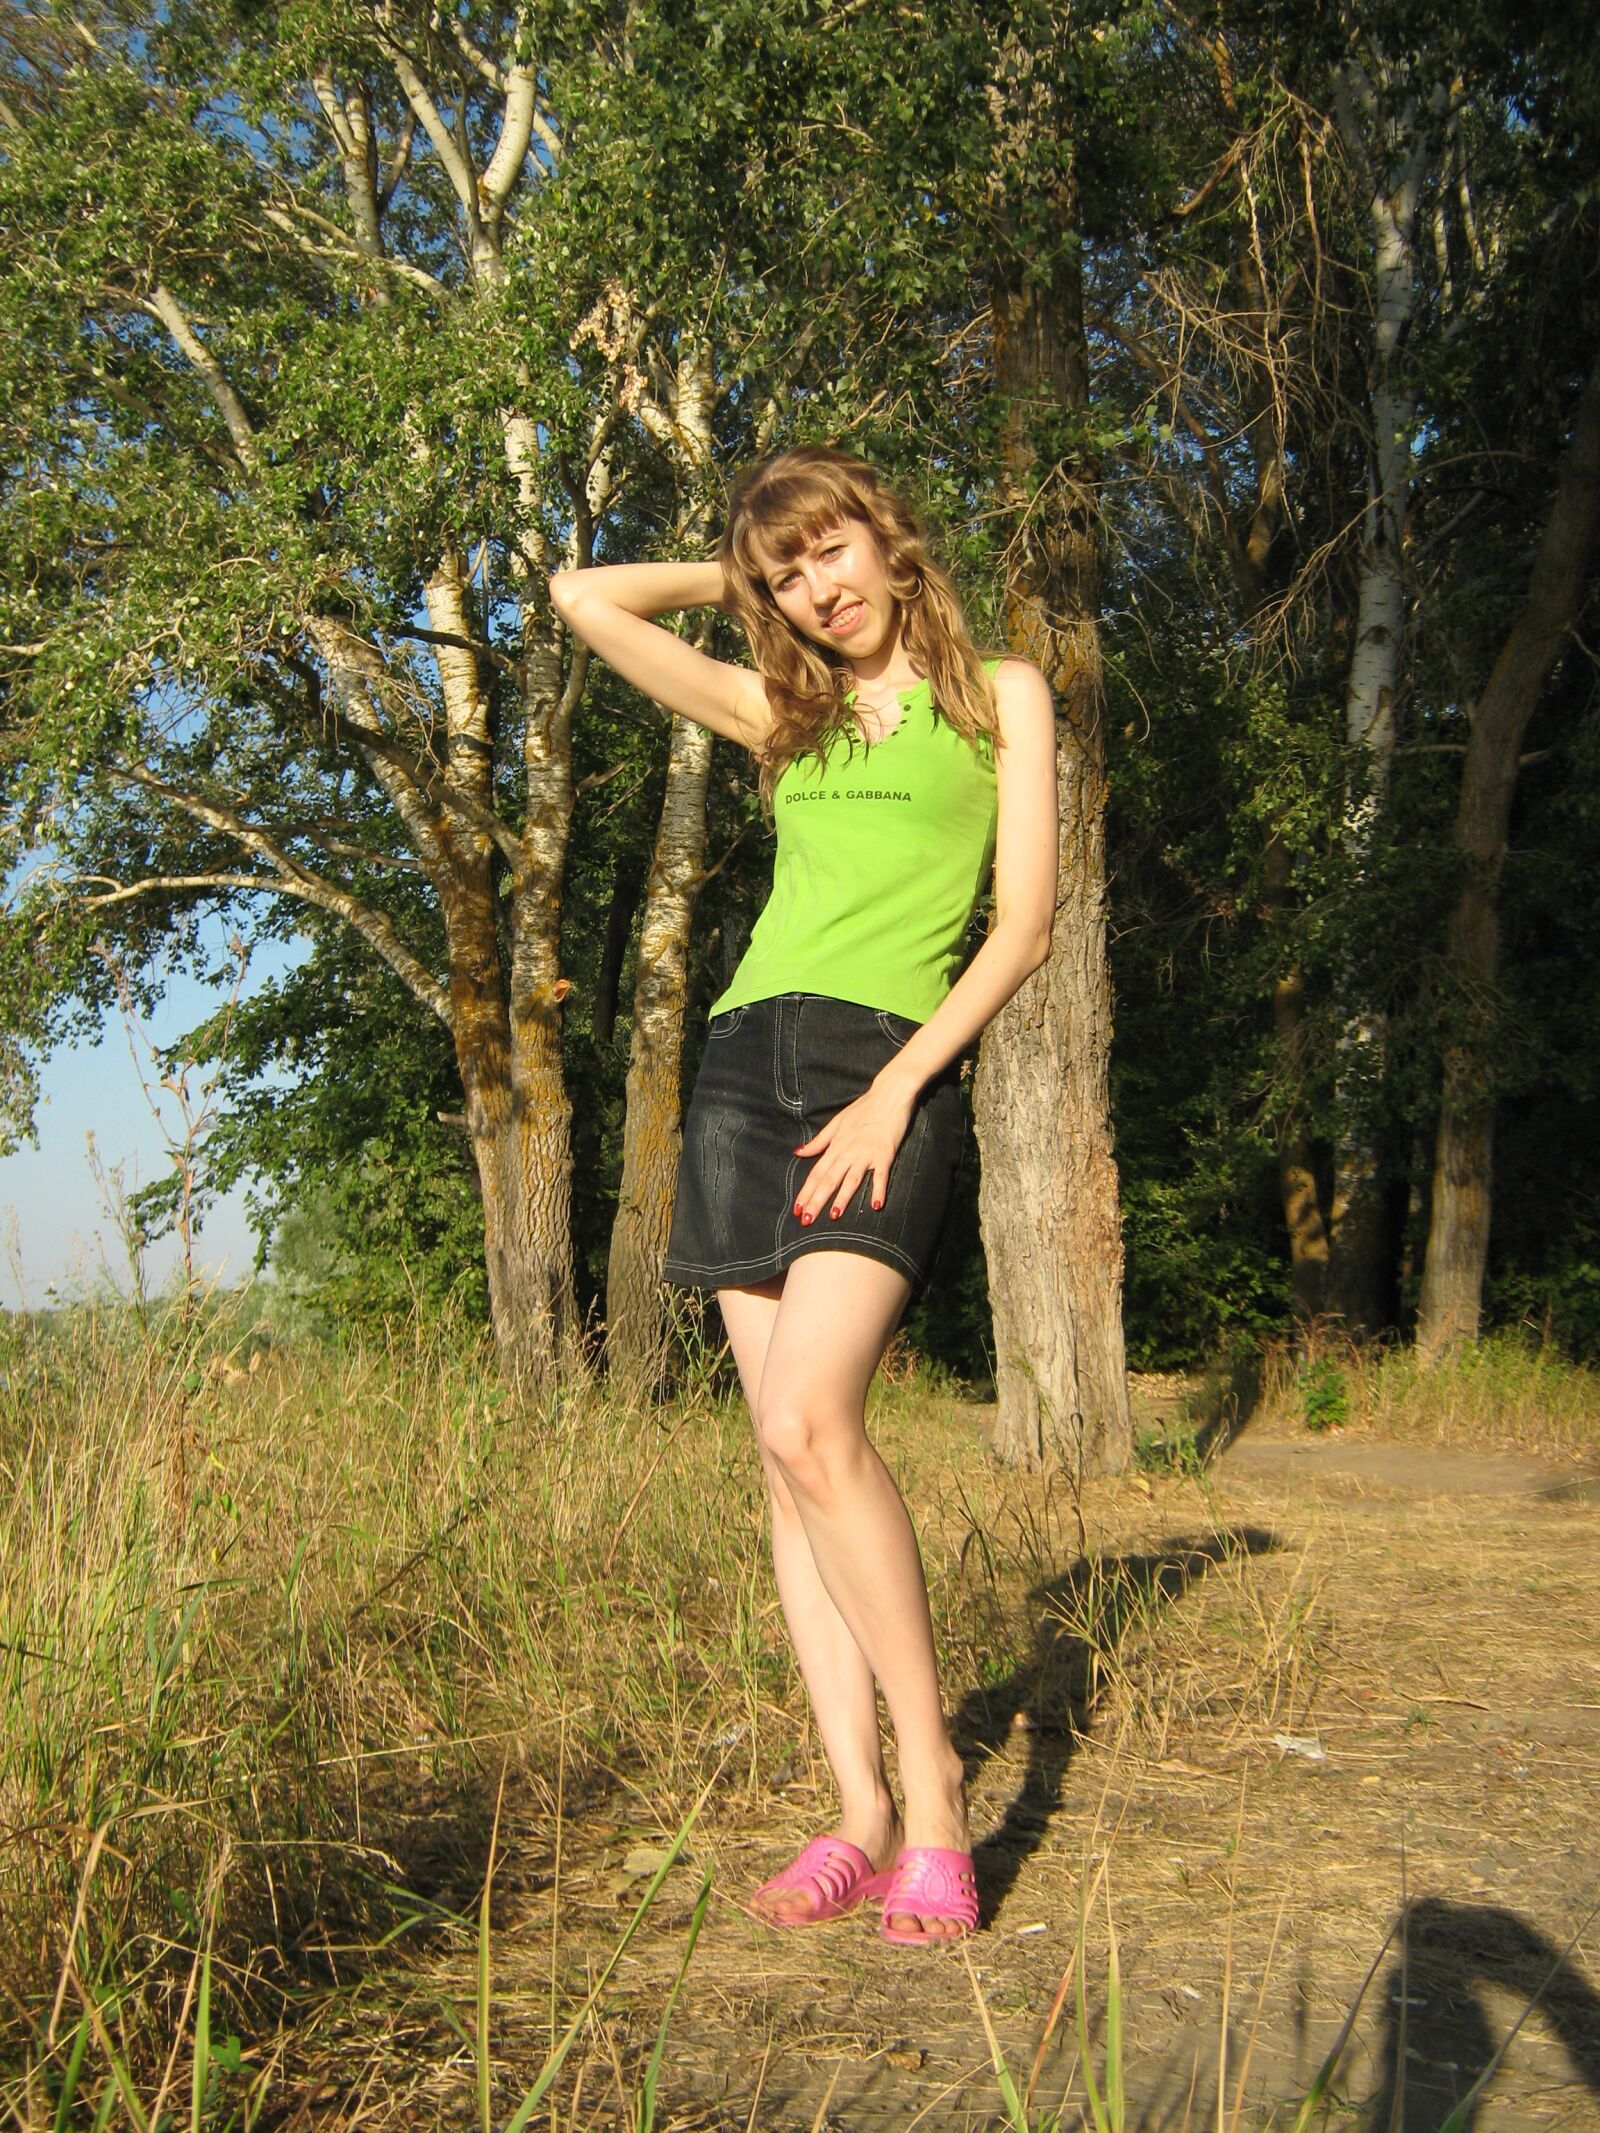 """Canon PowerShot A470 sample photo. """"Girl, beach, forest"""" photography"""